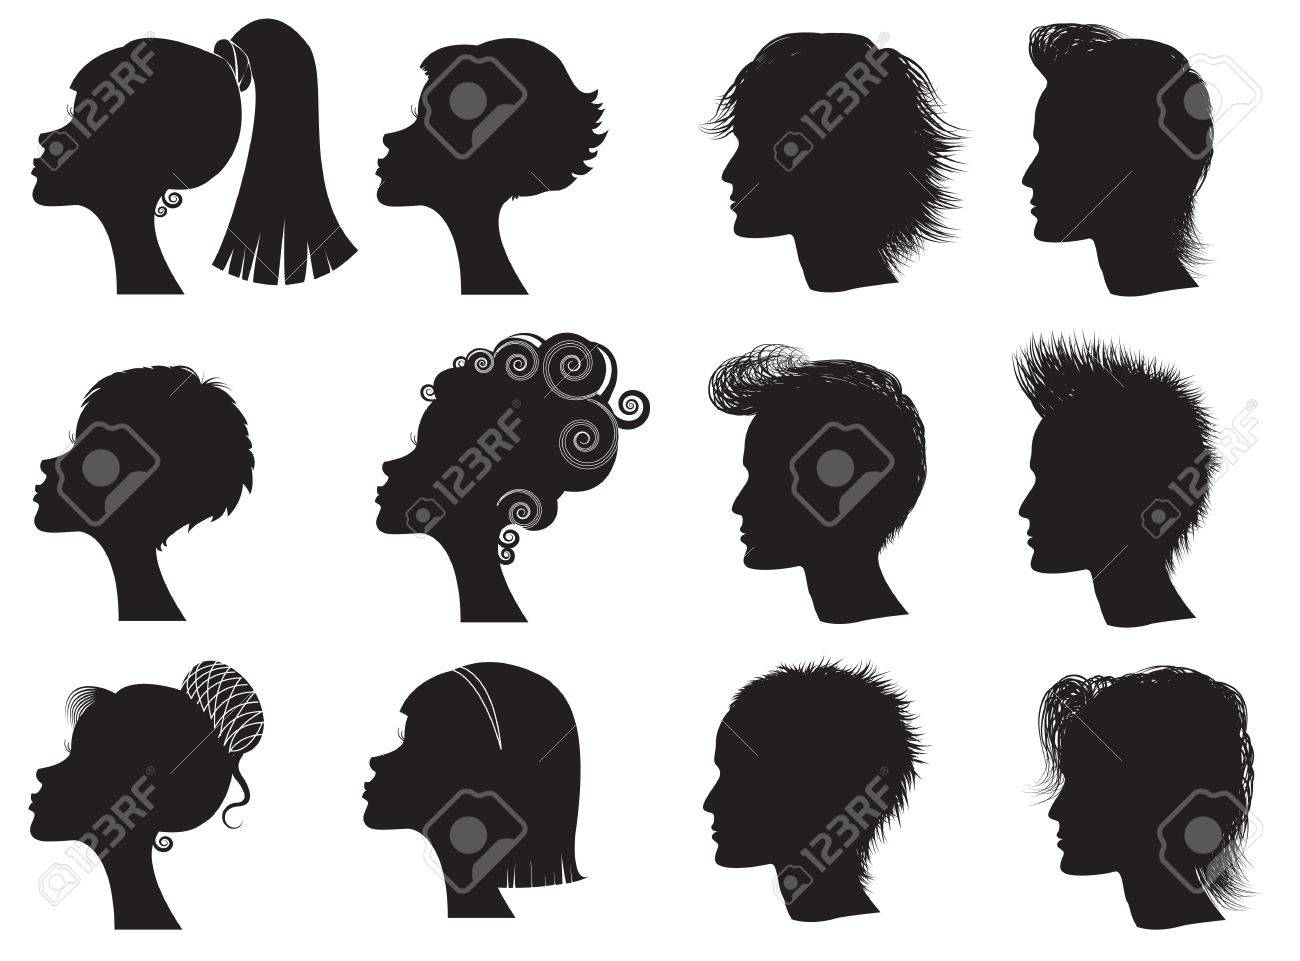 Hairstyles Vector Black Silhouettes Of Men And Women